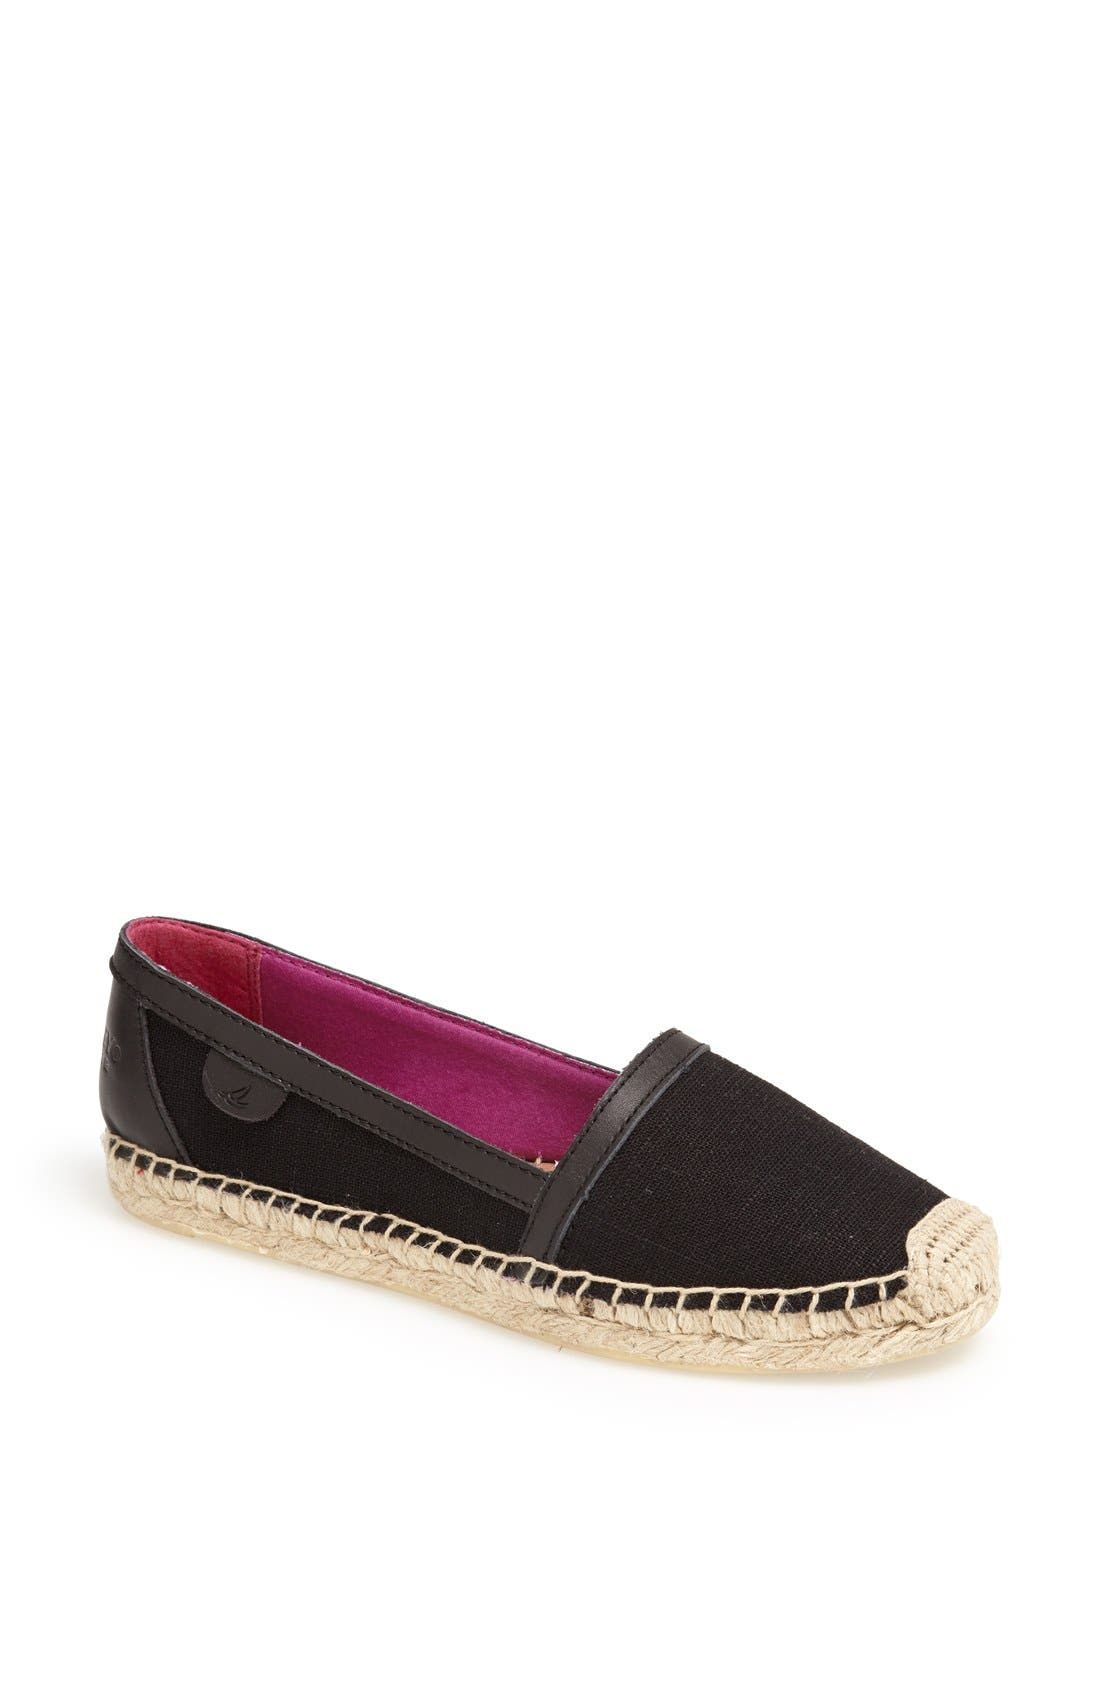 SPERRY DANICA FLAT, Main, color, 001